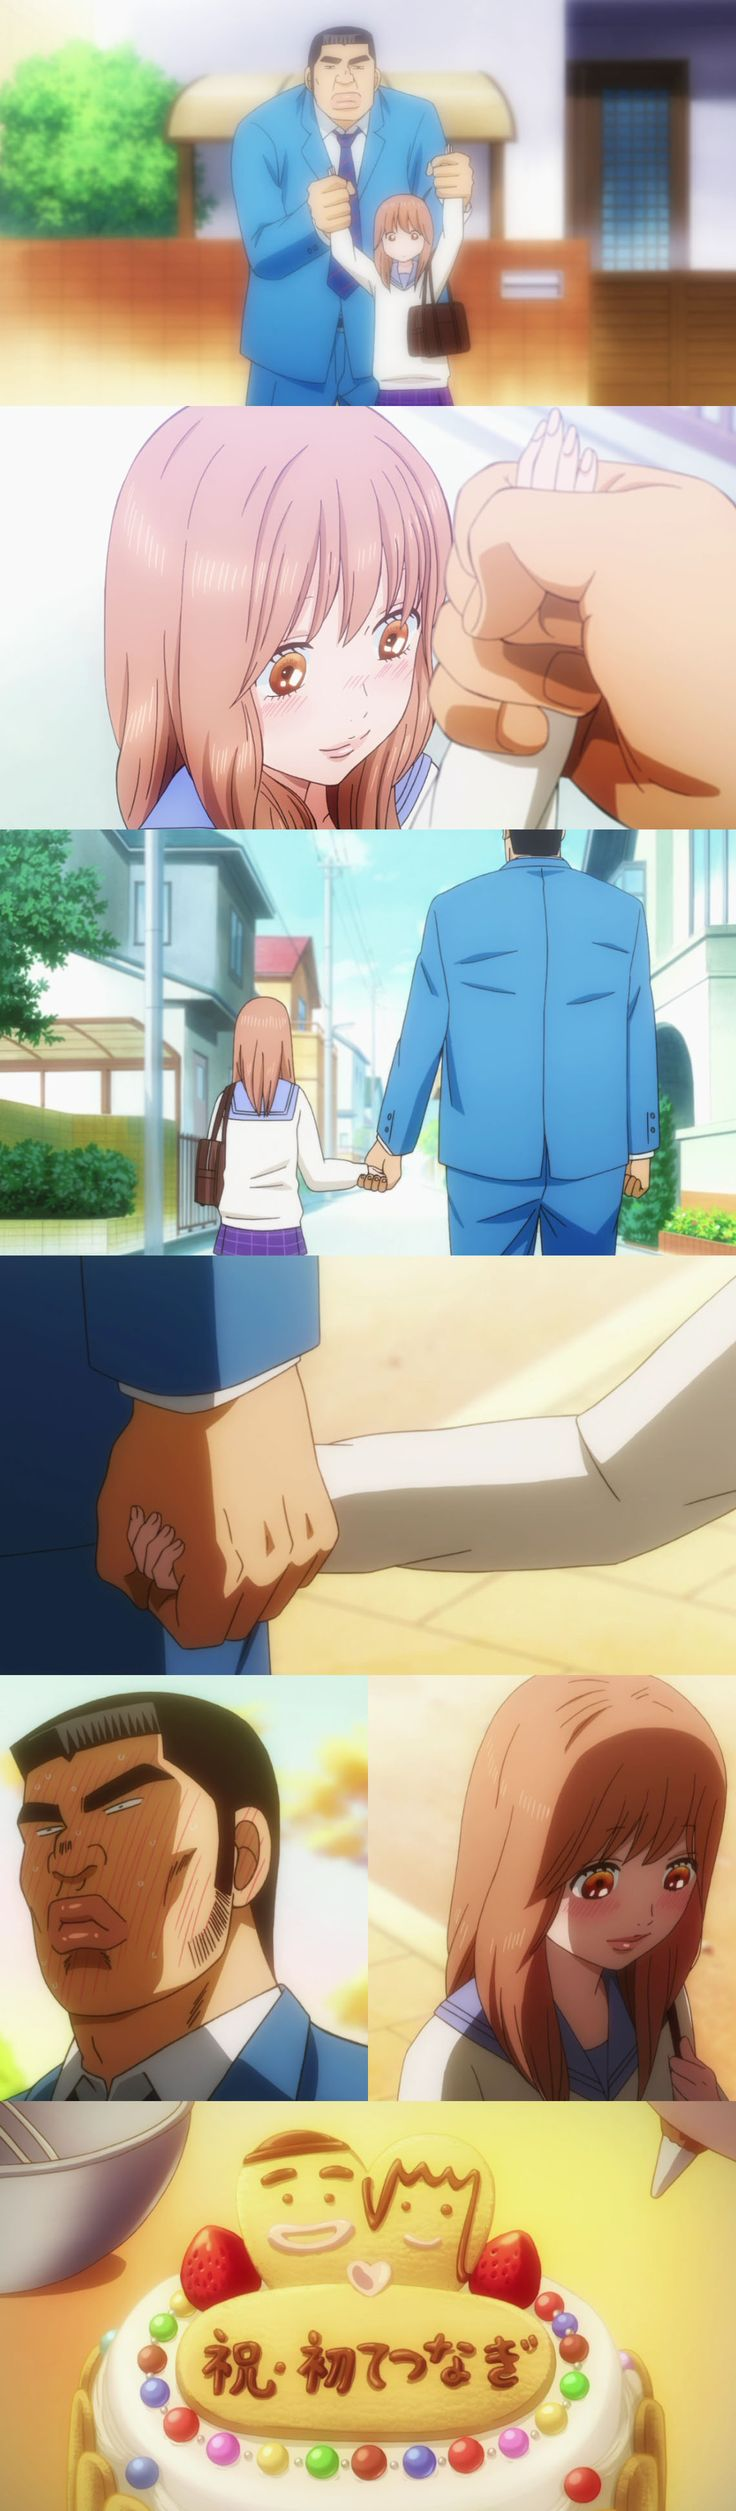 Ore monogatari - My Love Story. Ep.6 -- When hand in hand, Kawaii desu.